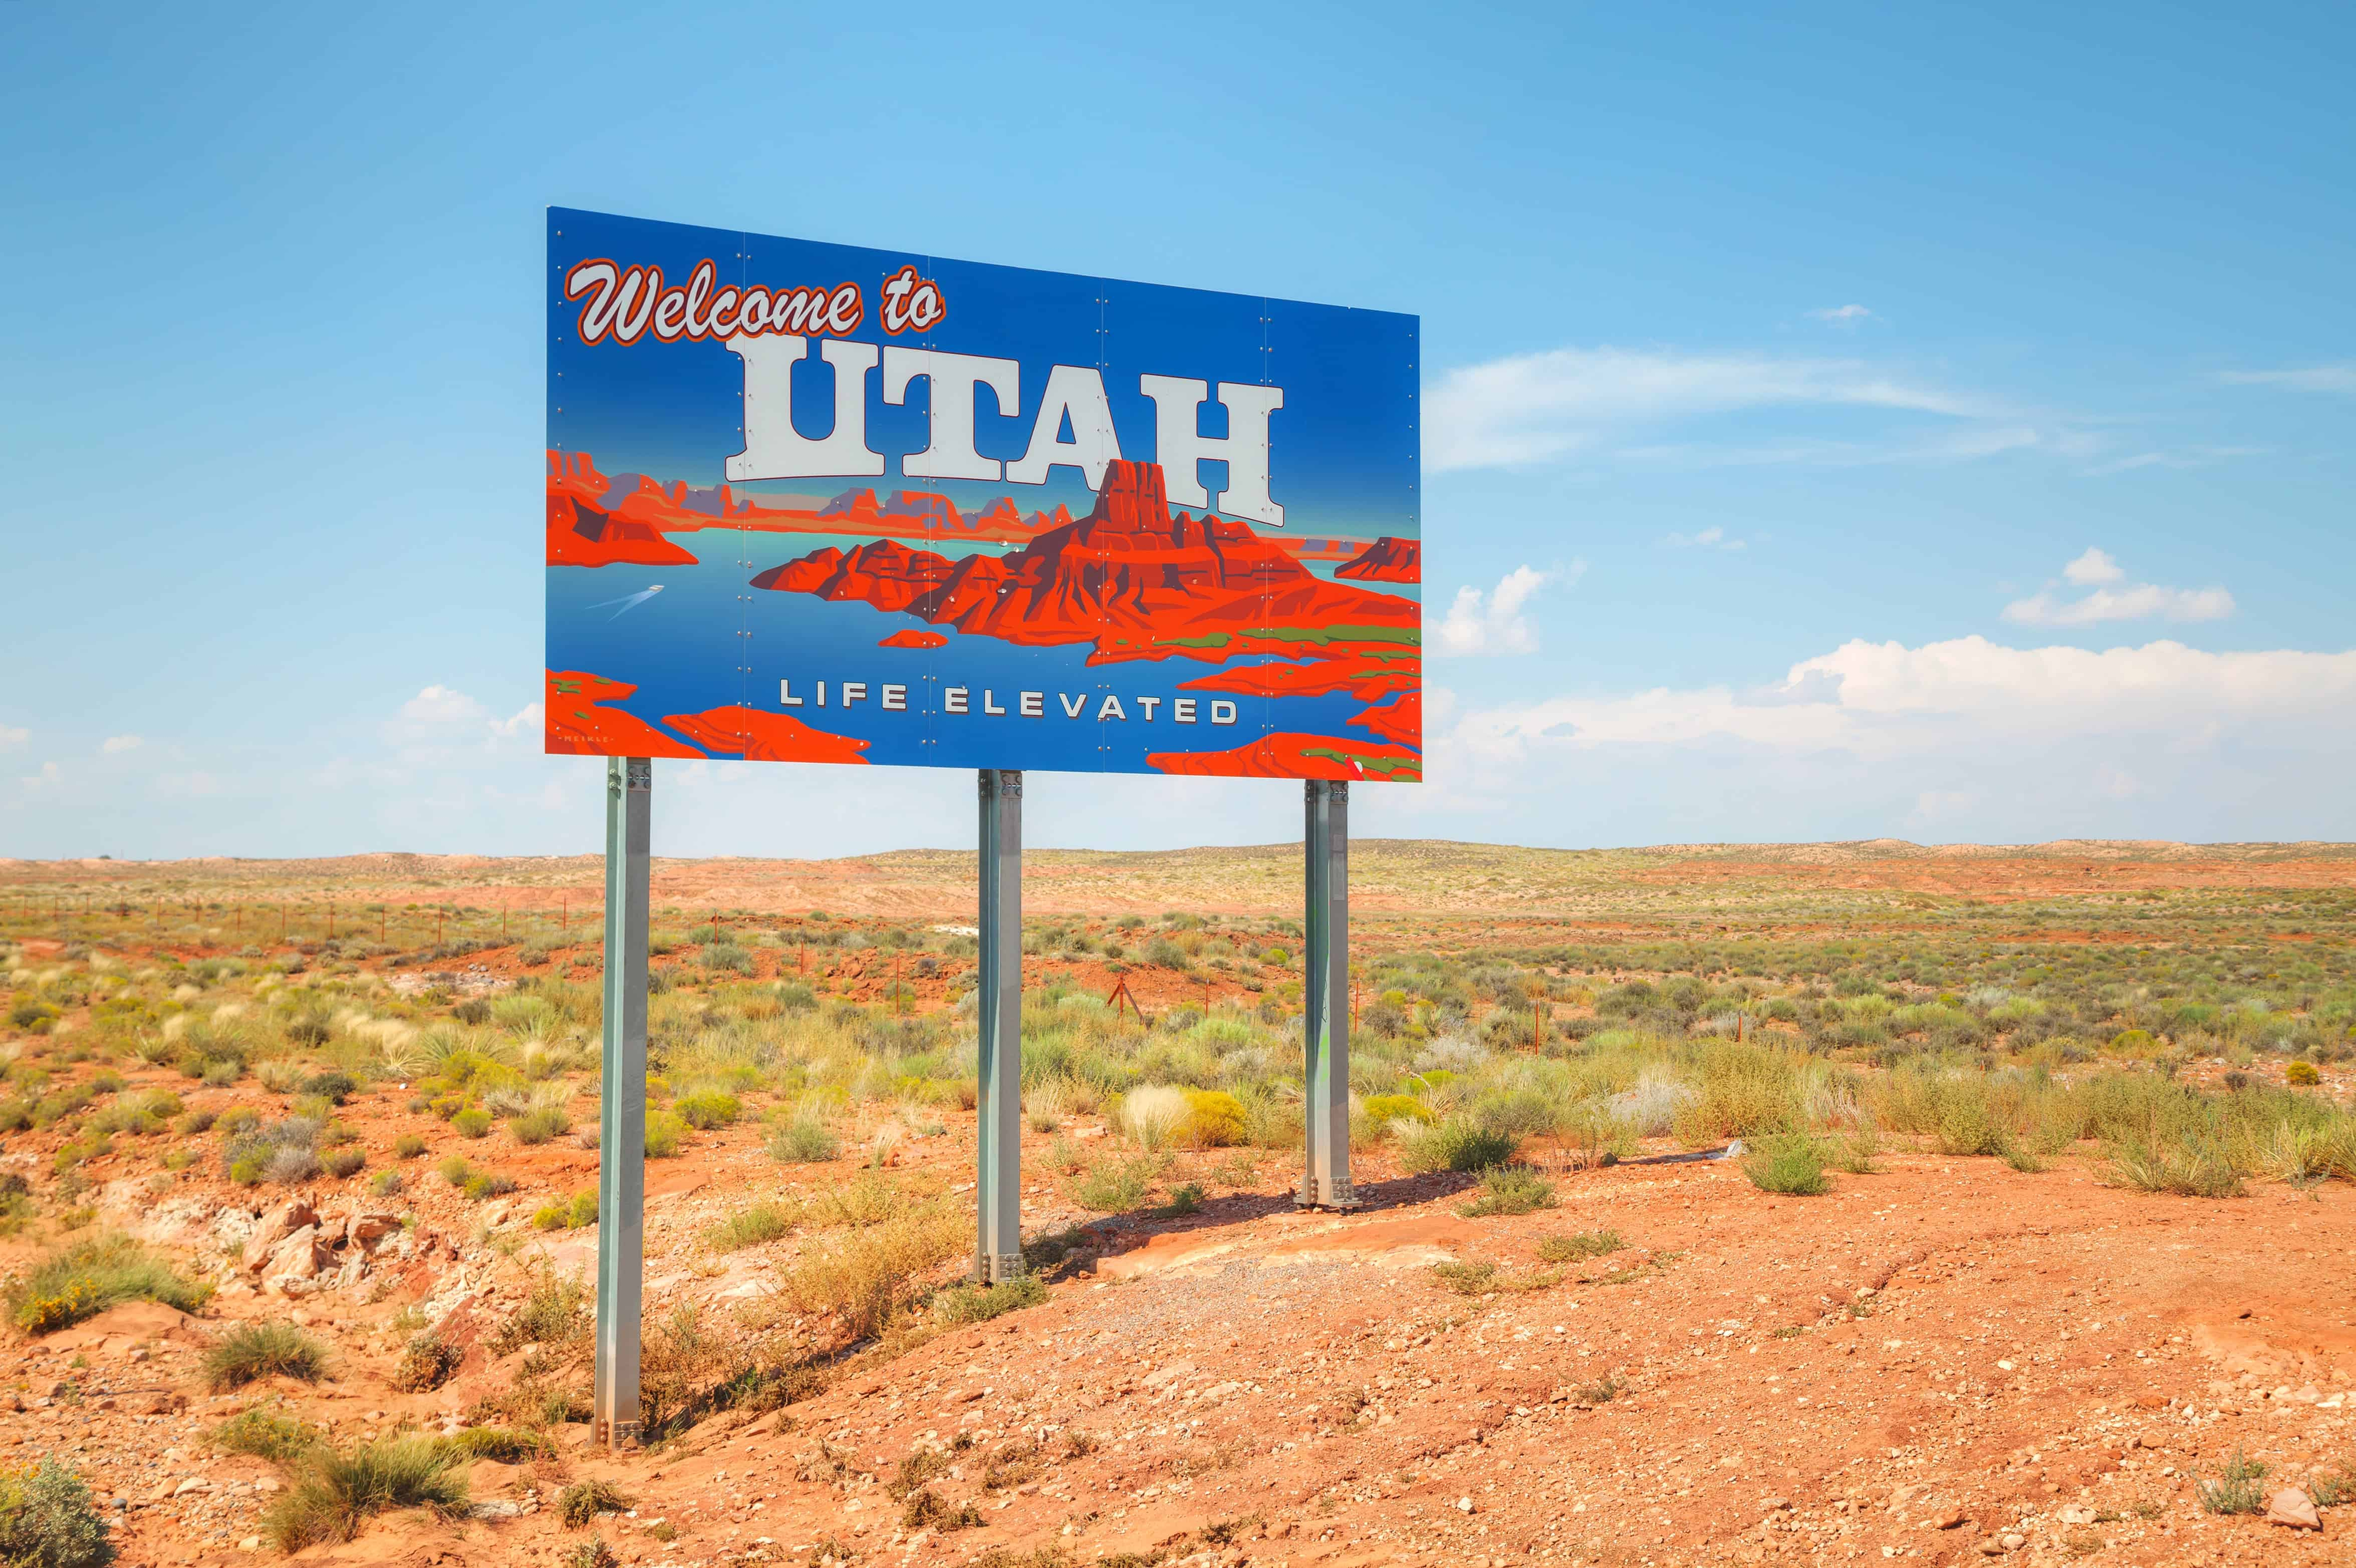 Image of Utah State line sign with text